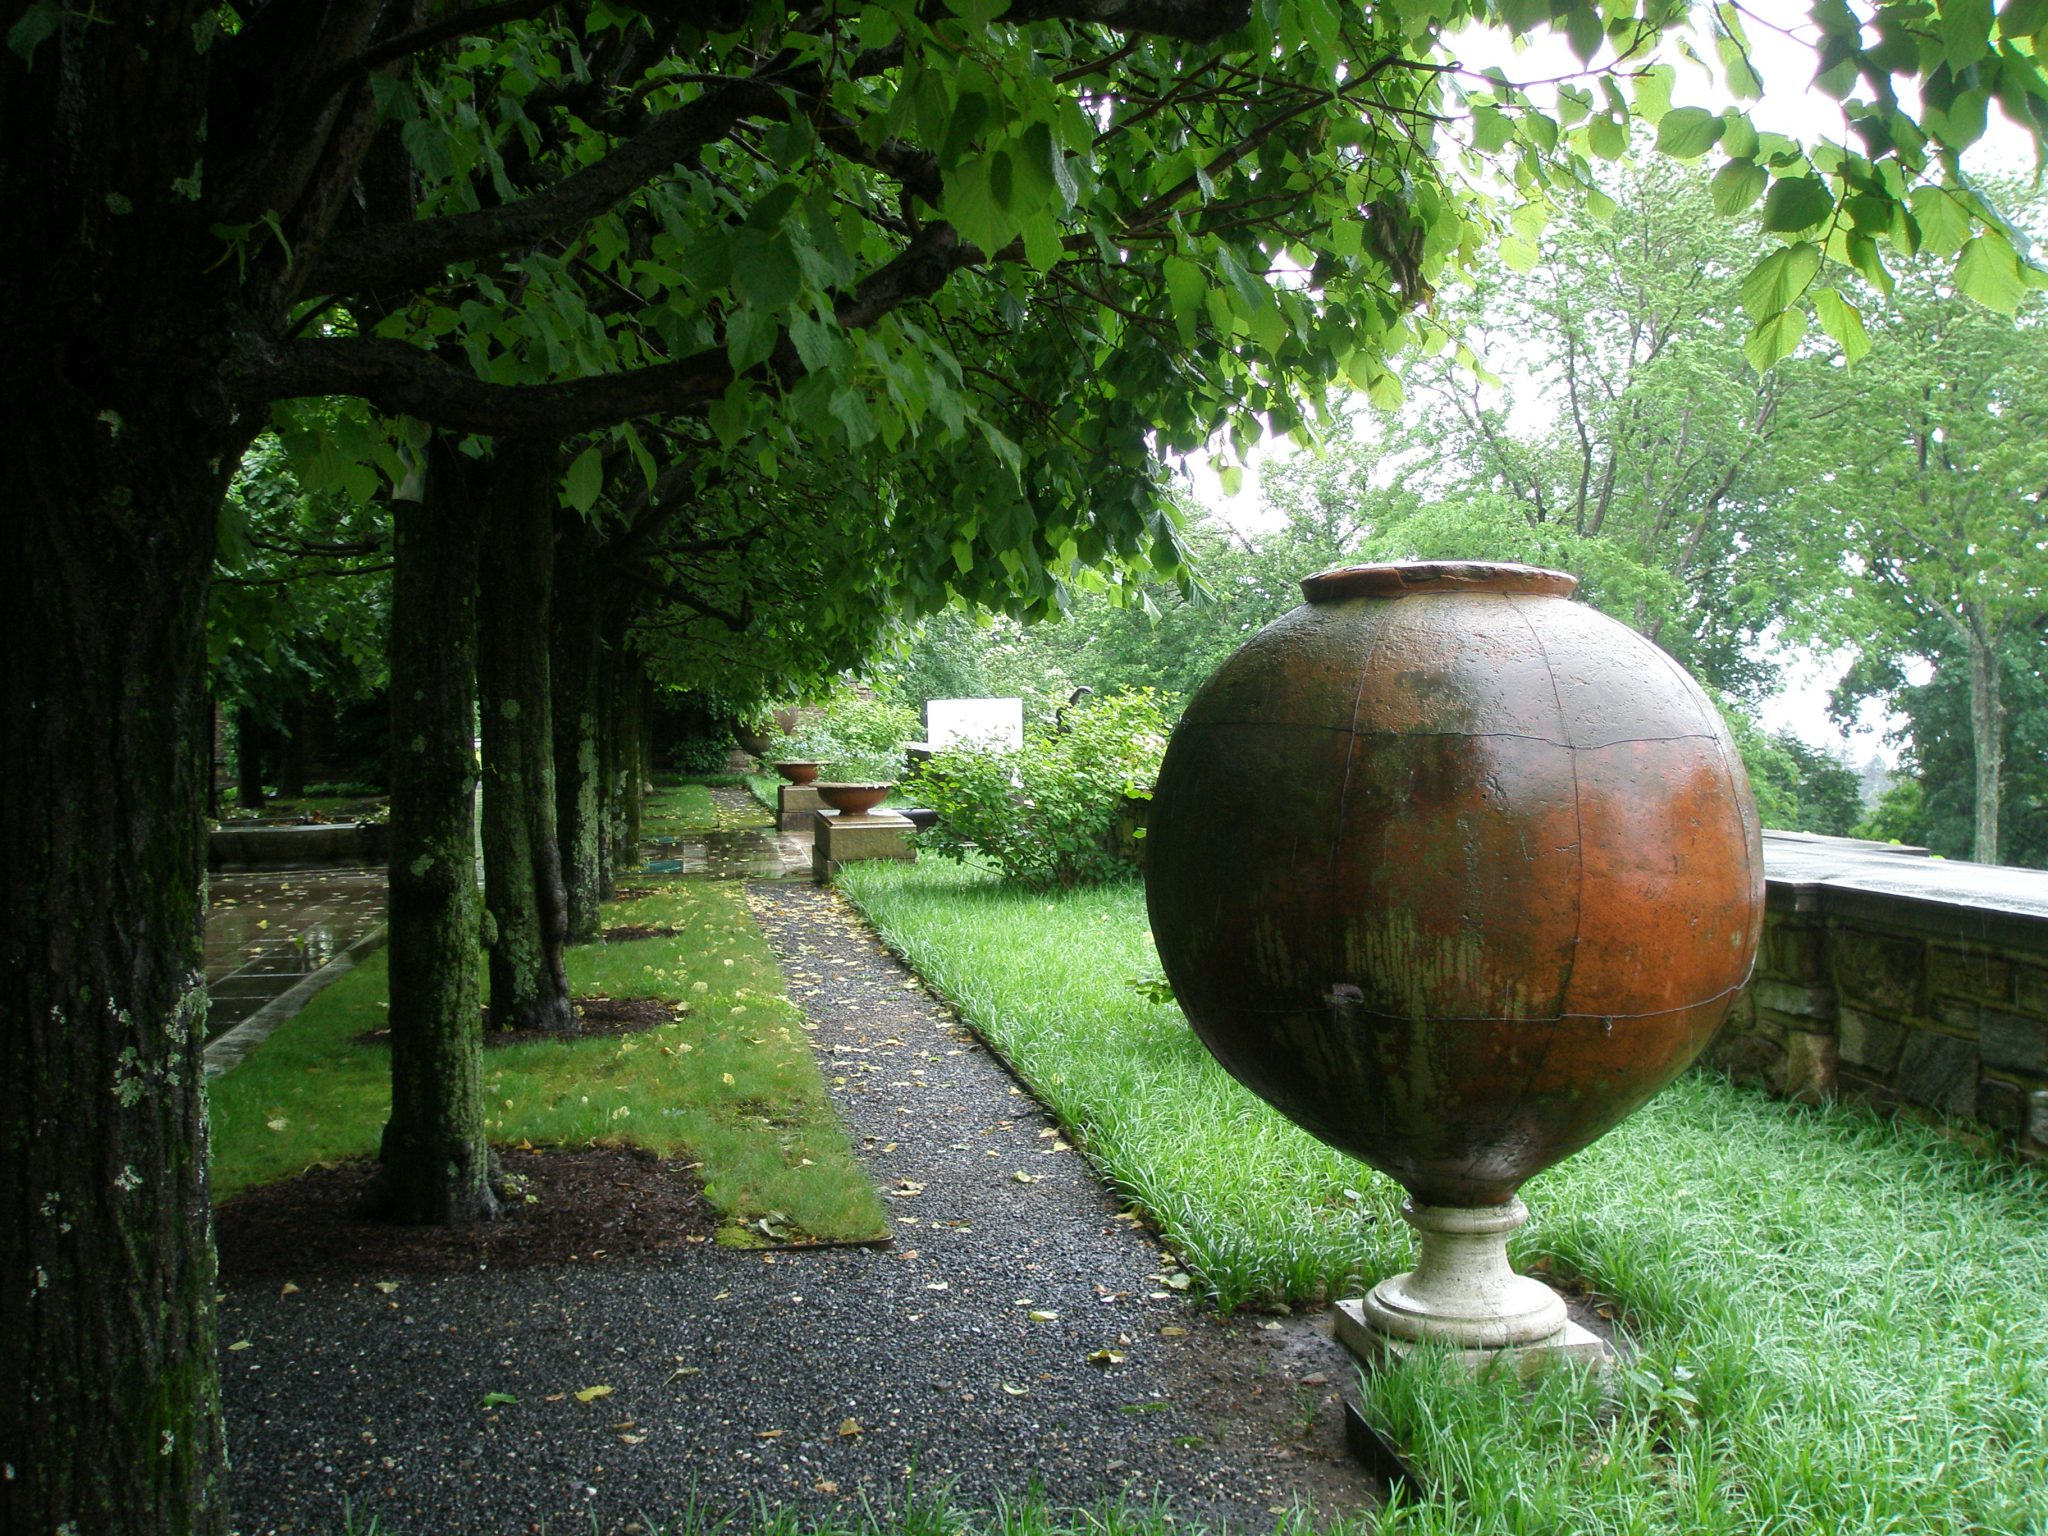 Giant Etruscan Oil Jar, on the Linden Allee